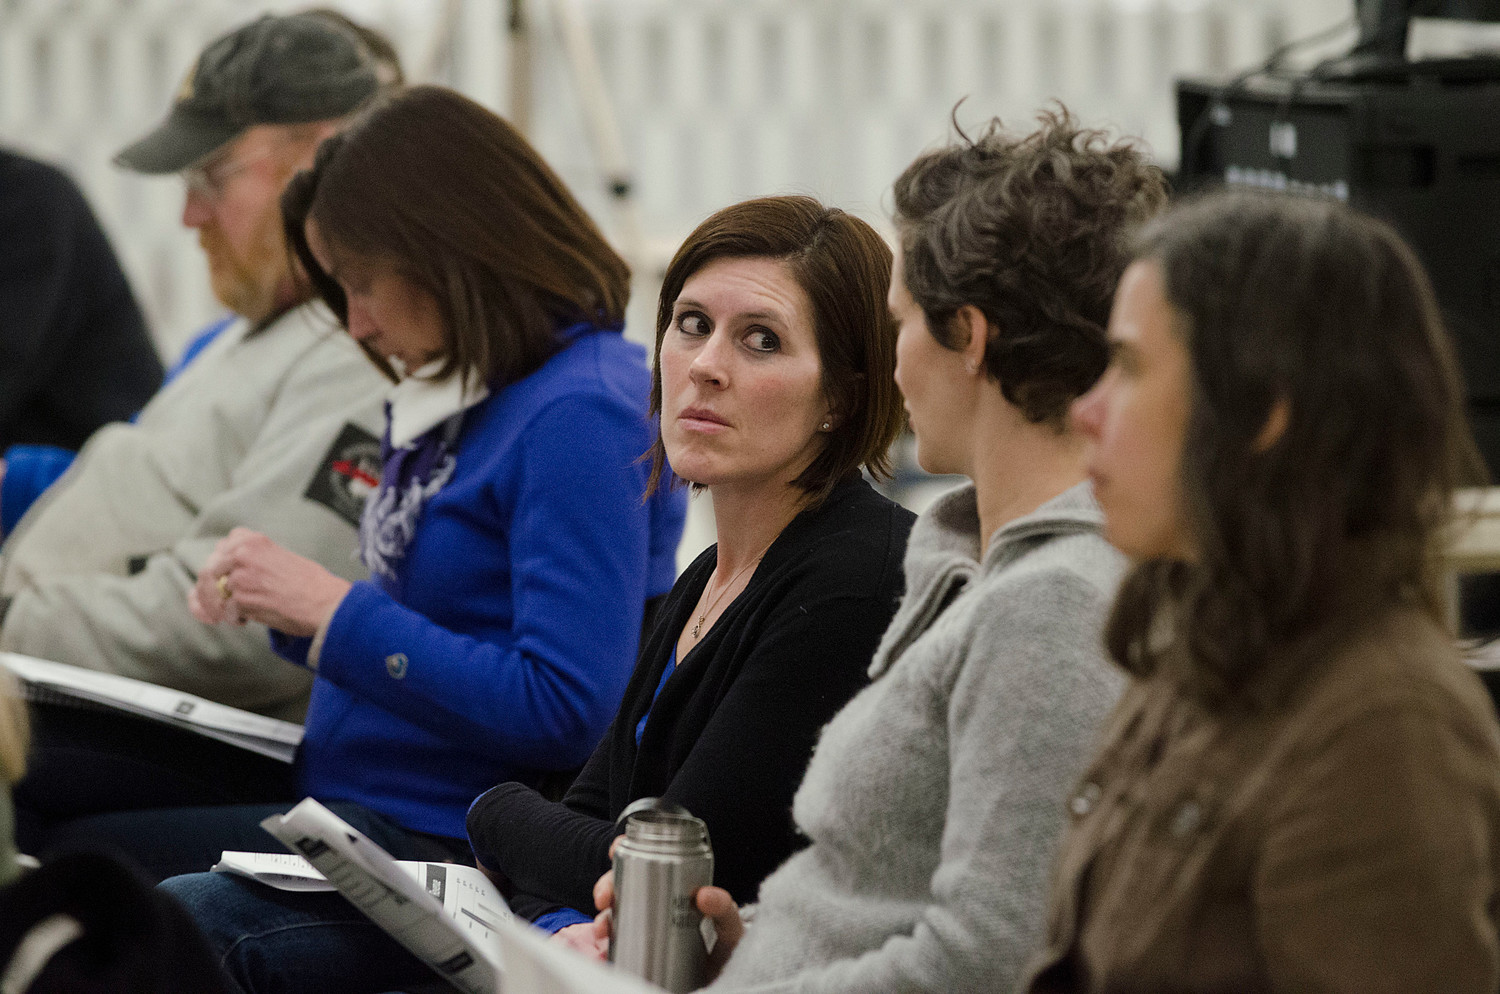 Sally Deal (middle) looks at friend Carly Reich as they react to remarks during the meeting.